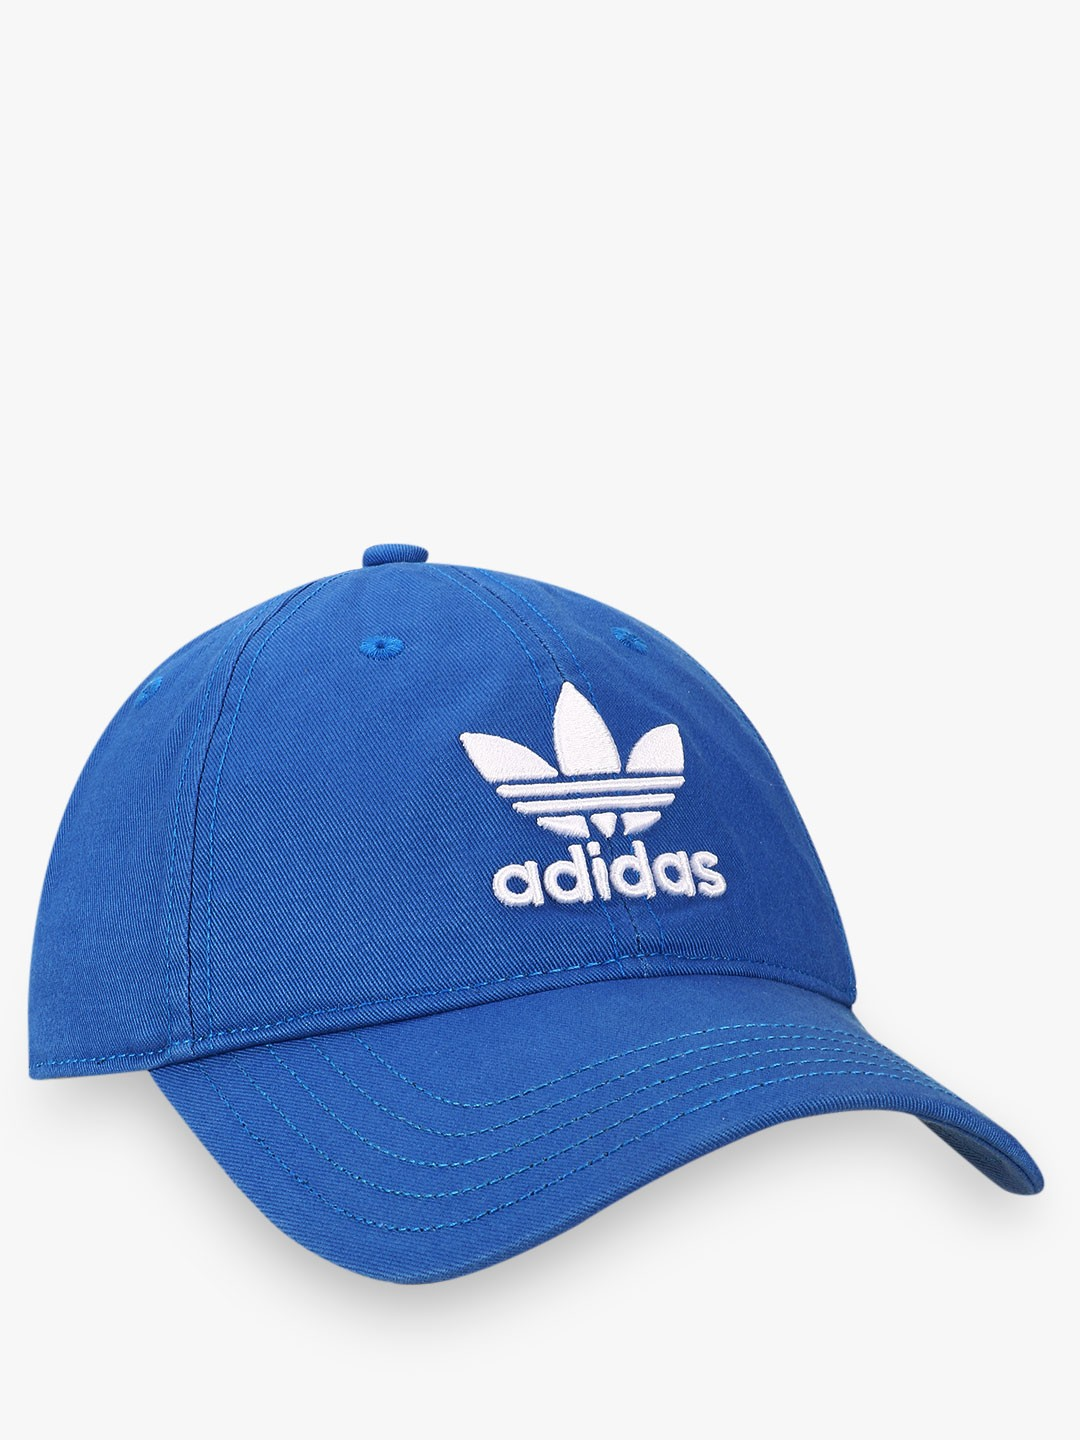 Adidas Originals Blue Trefoil Cap 1